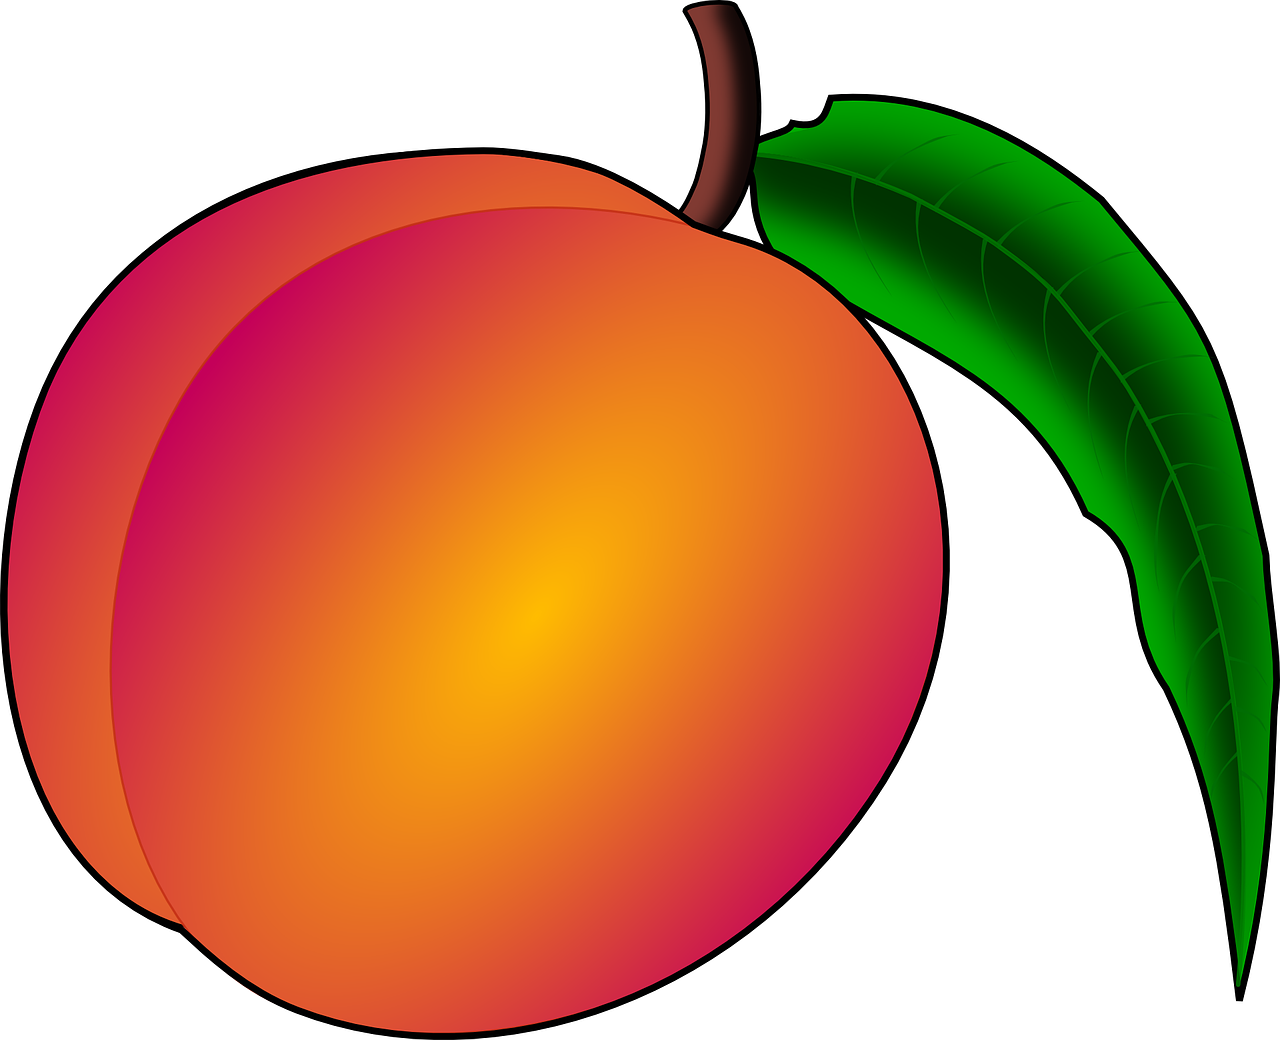 Red nectarine